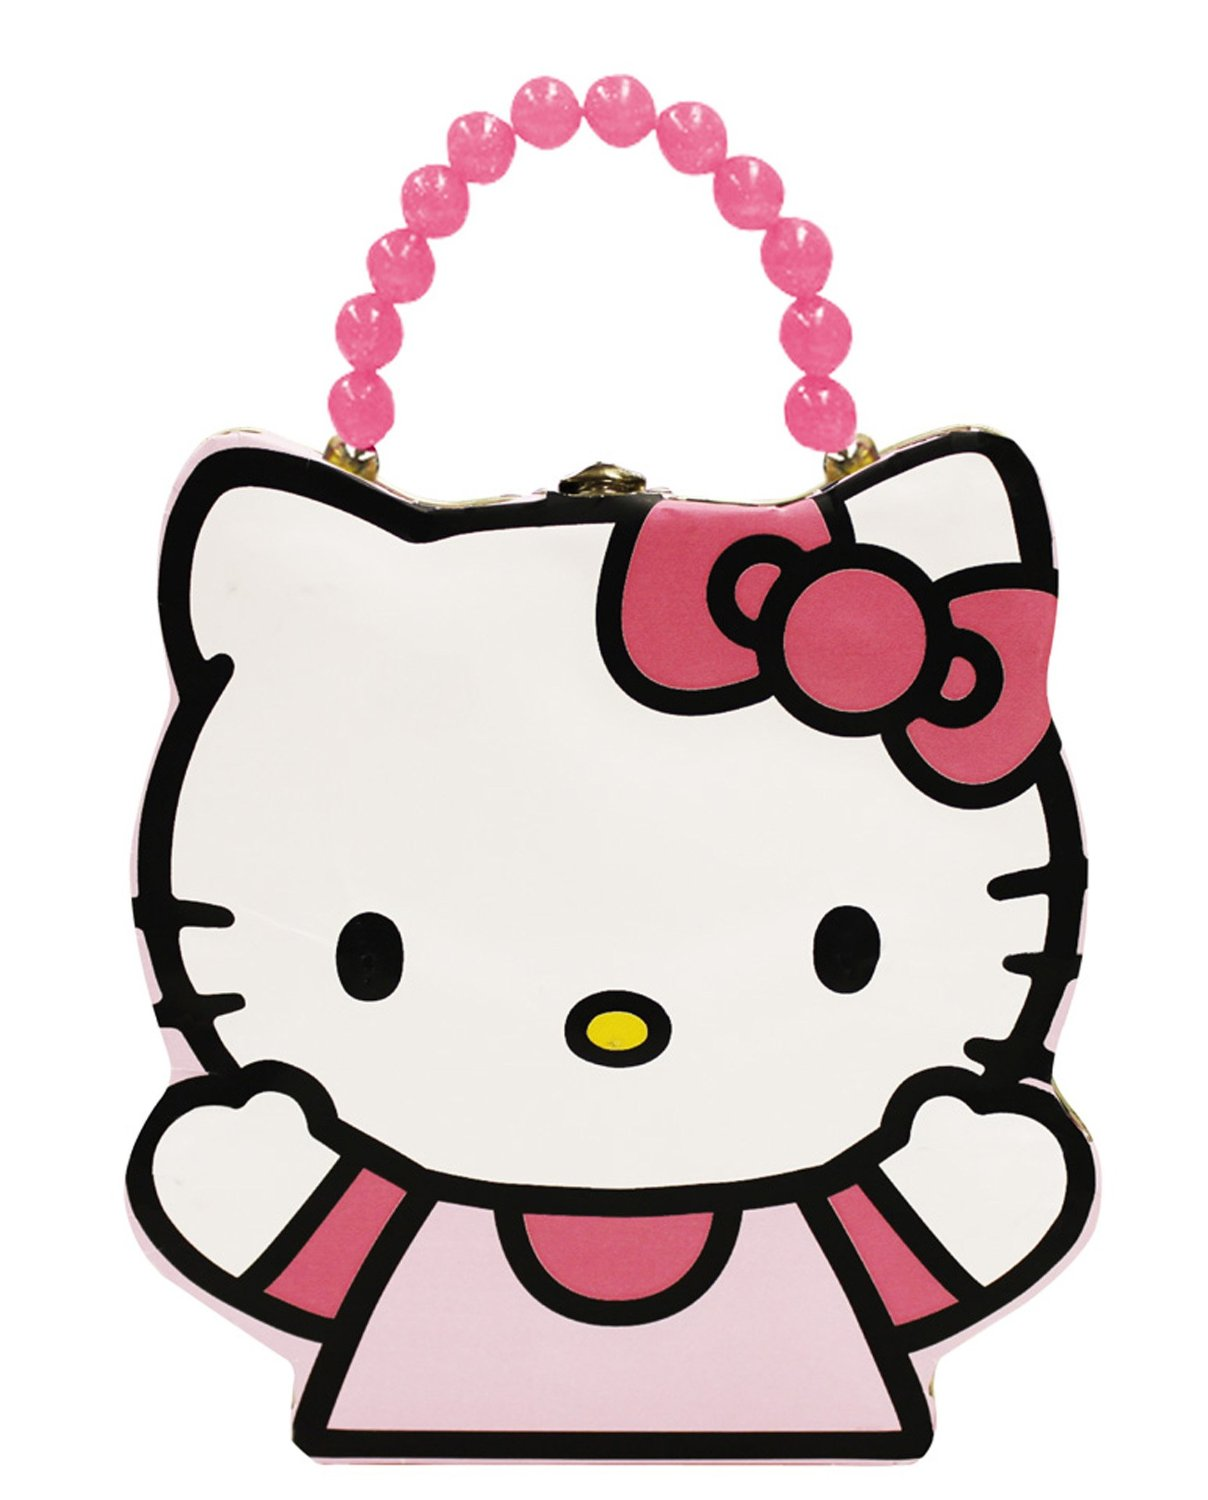 Purse Hello Kitty Kitty Face Metal Tin Box New Gifts Toys Licensed 698207 by The Tin Box